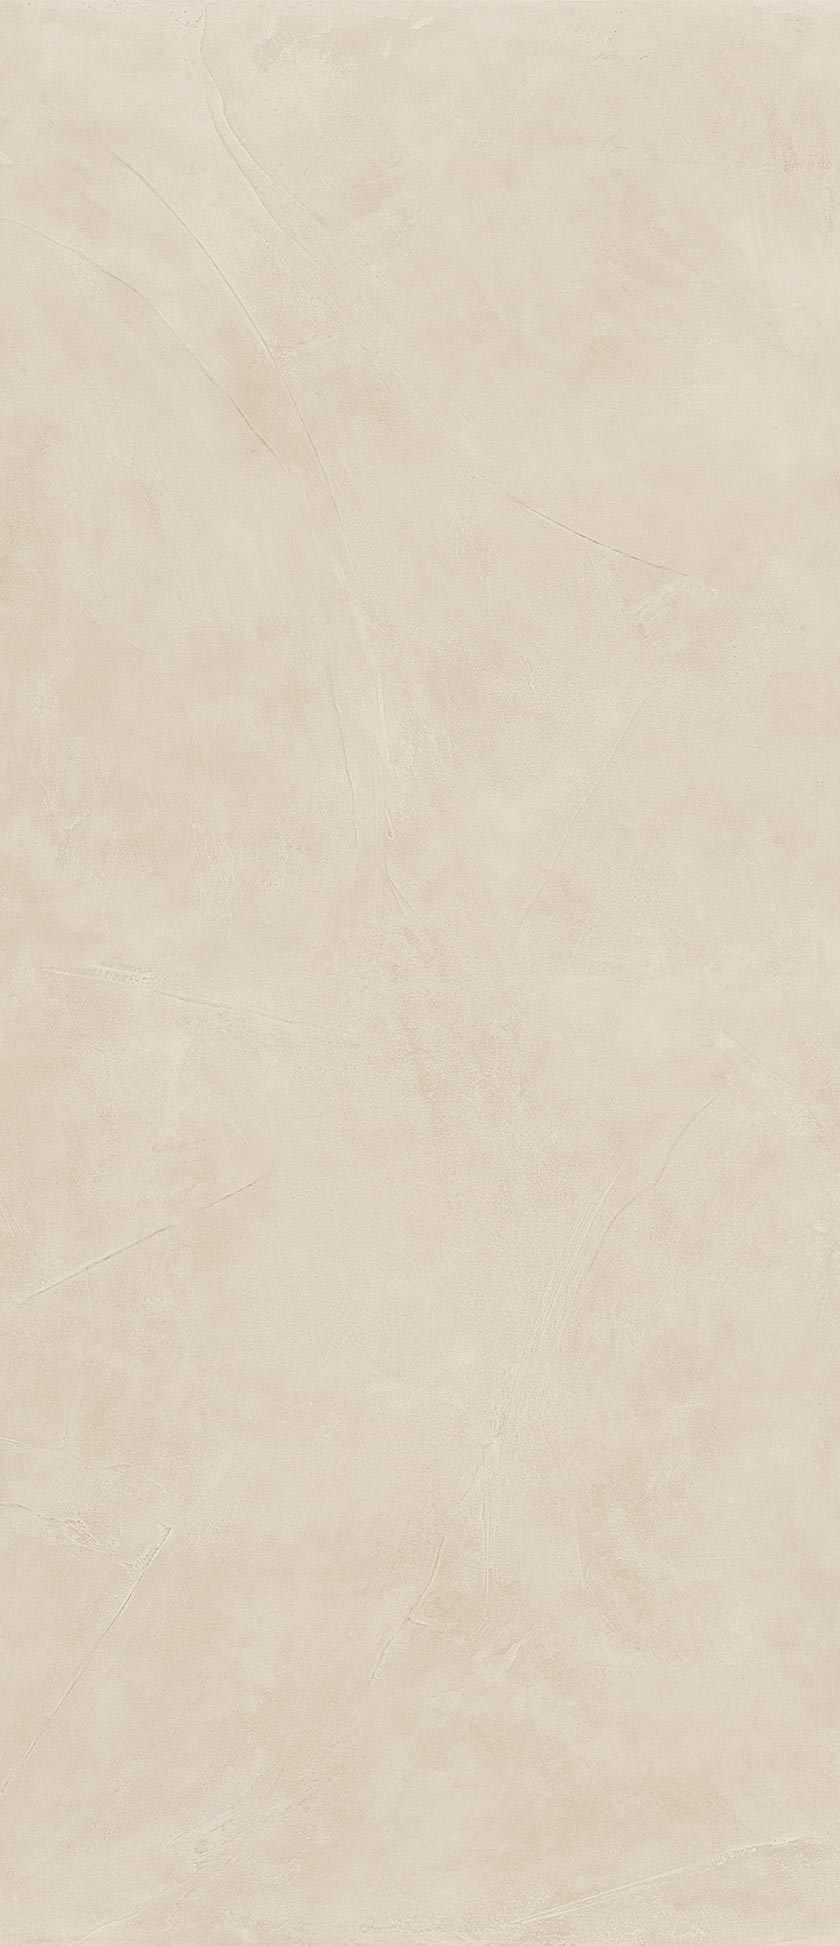 atlas-plan-prism-cord-large-surface-in-porcelain-tile